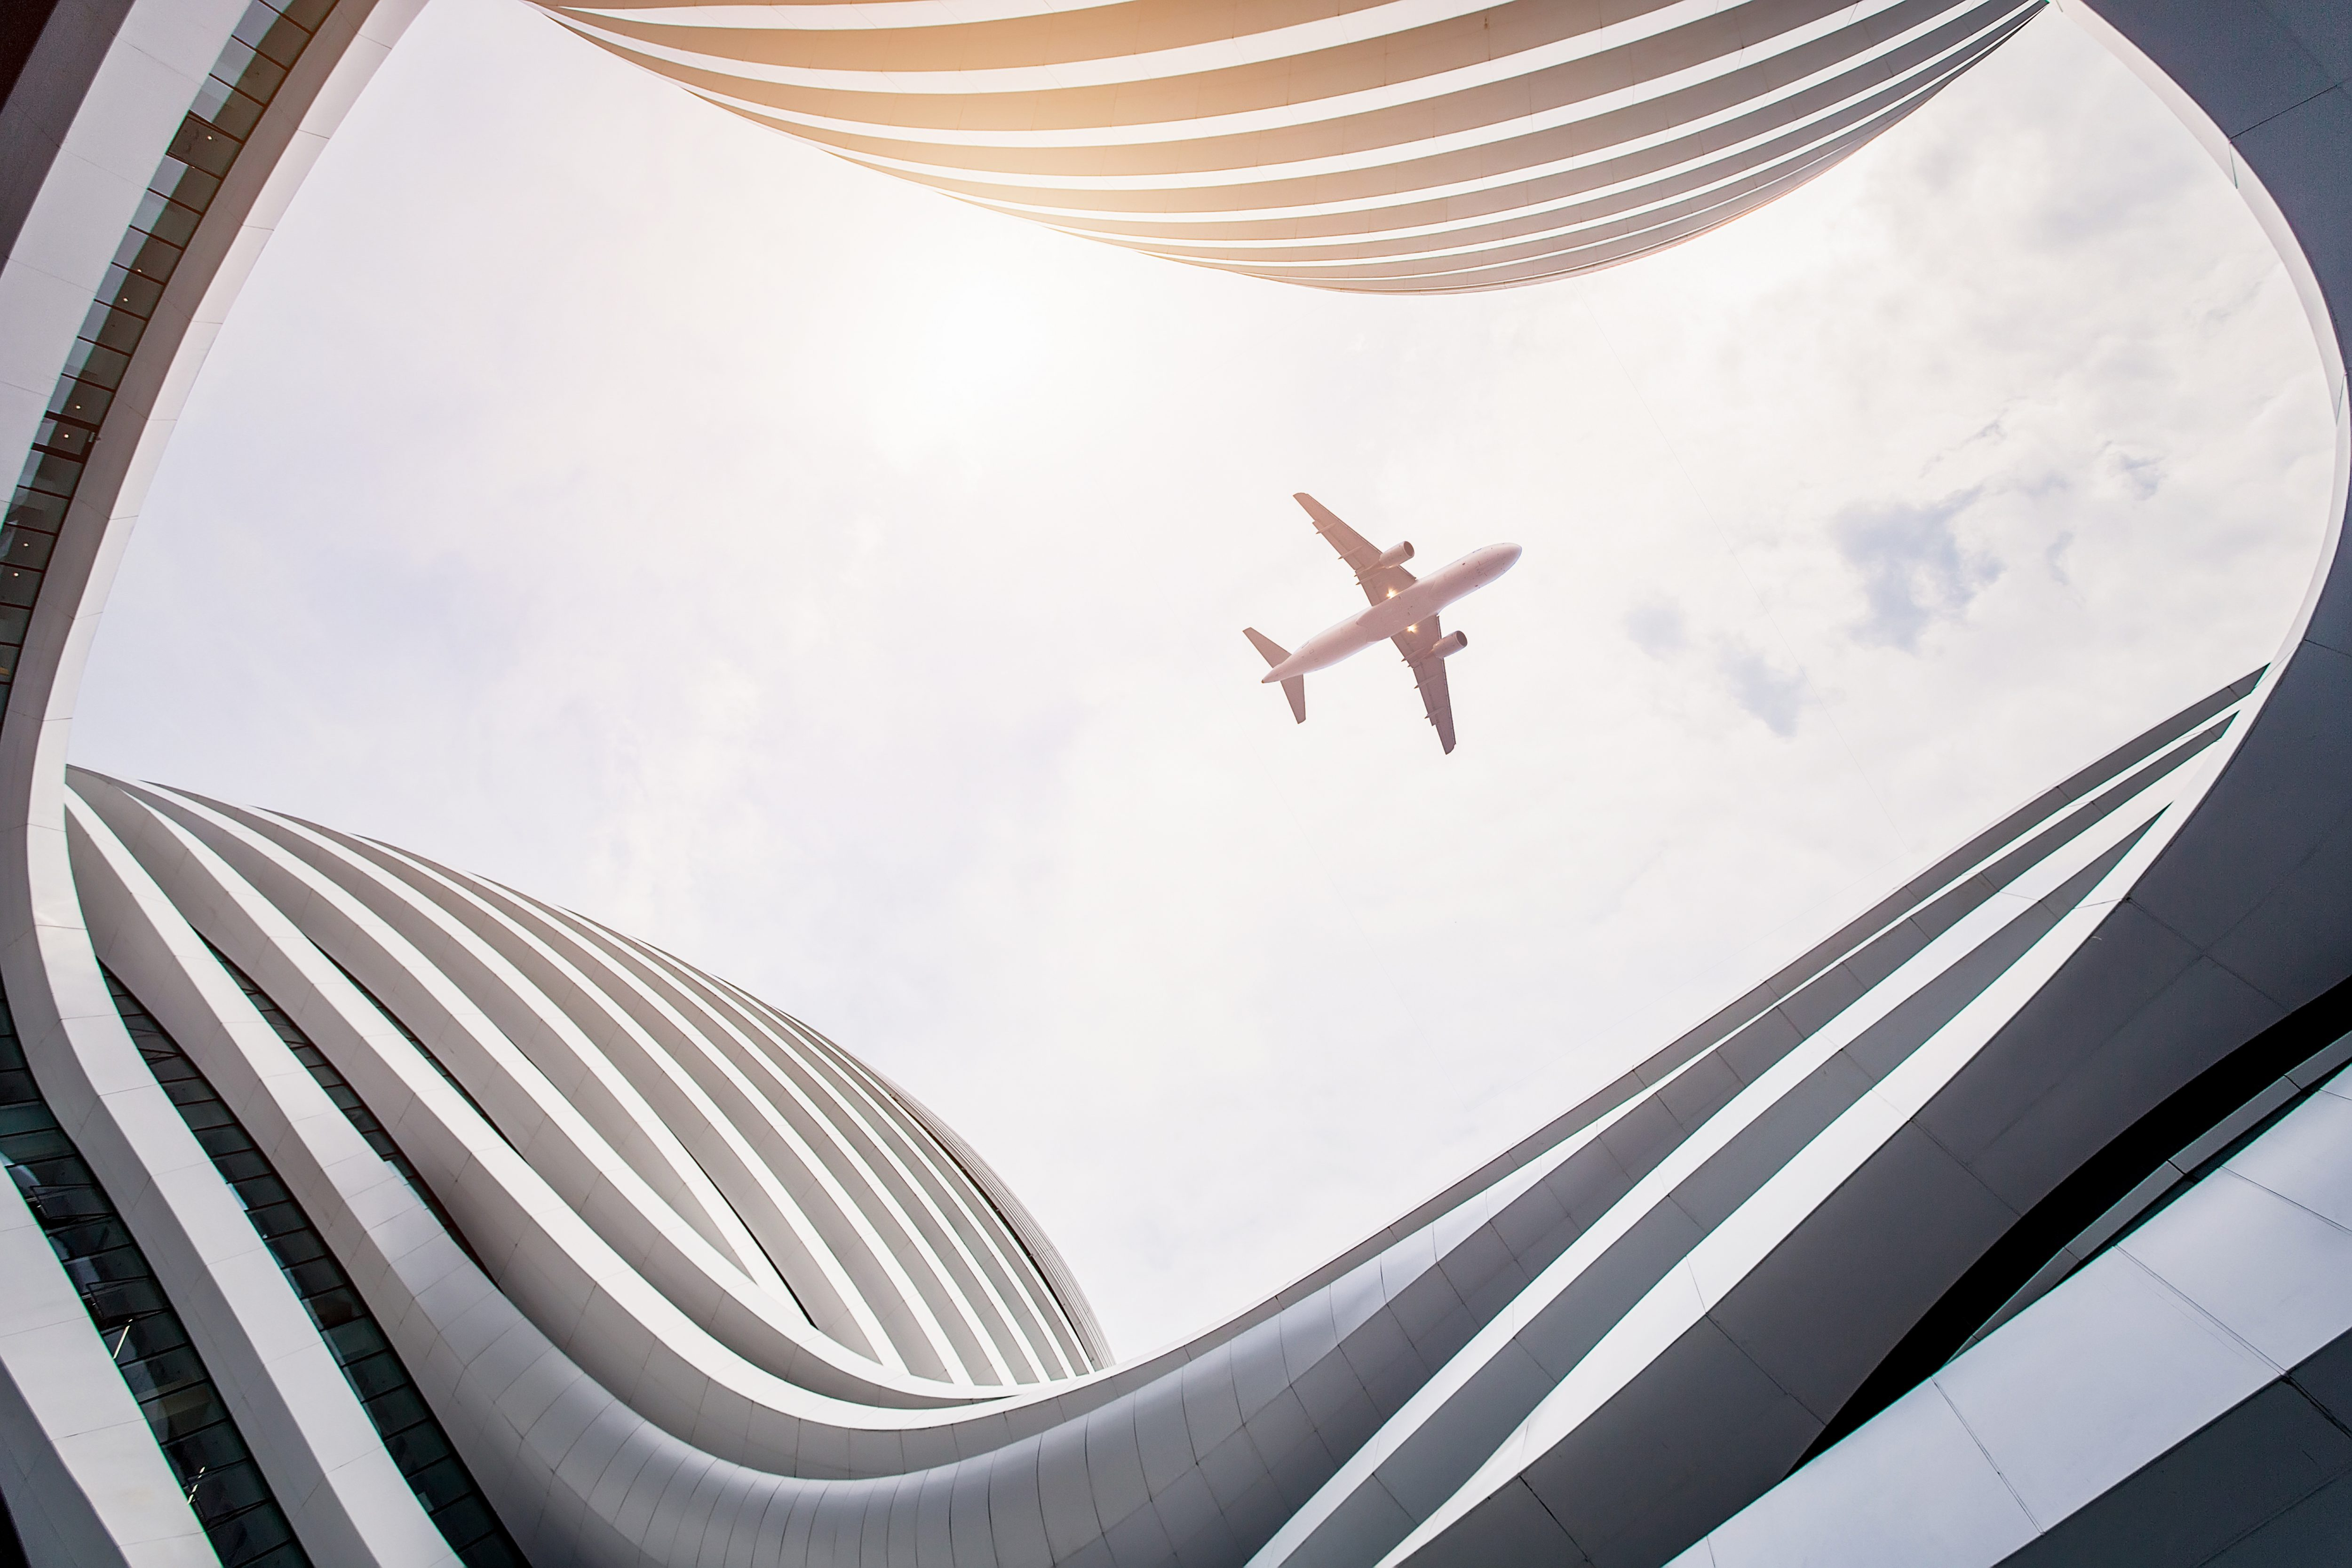 View from the ground looking up at the underside of an aeroplane